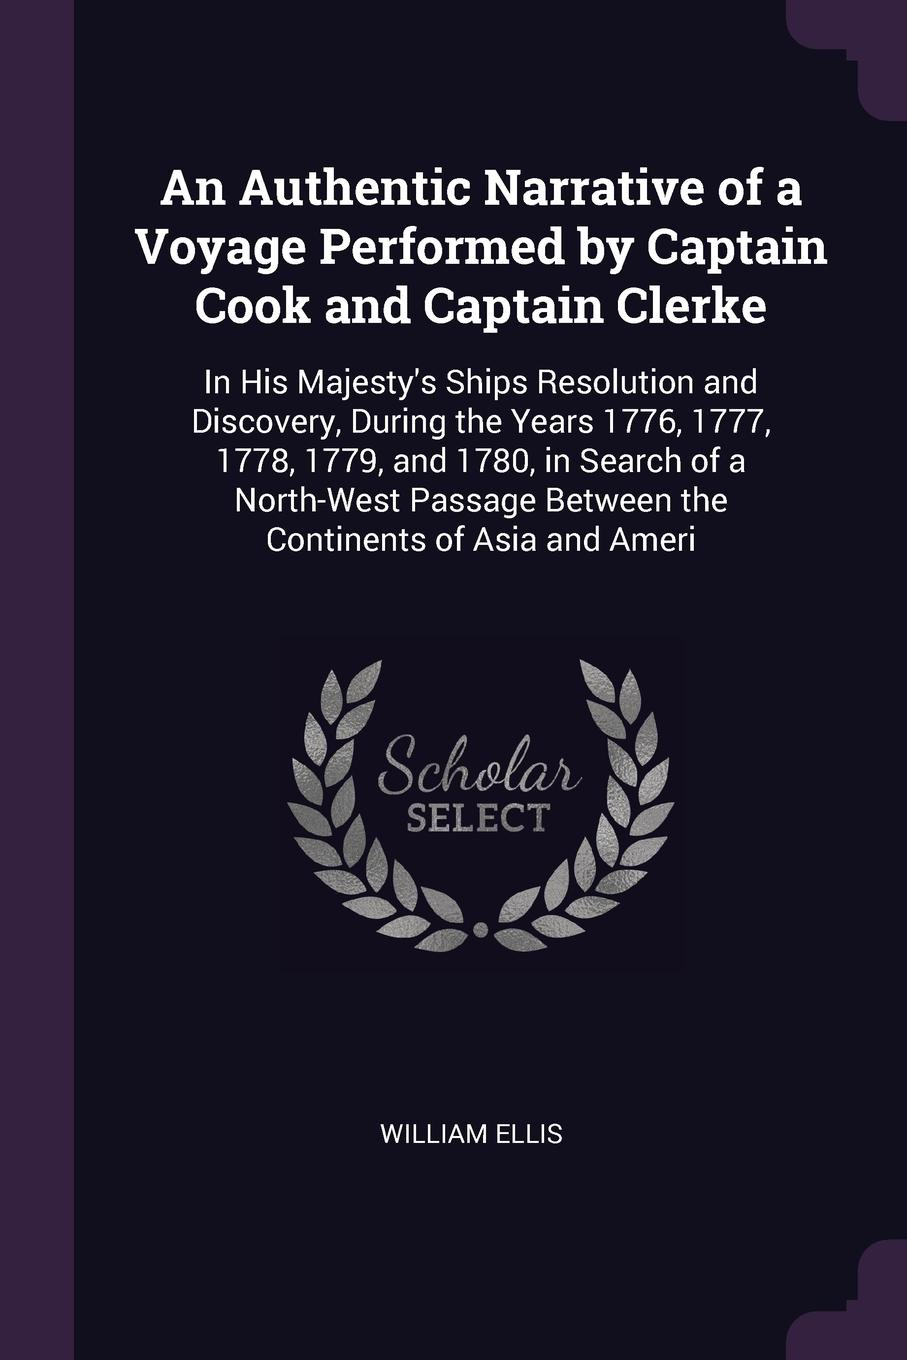 An Authentic Narrative of a Voyage Performed by Captain Cook and Captain Clerke. In His Majesty`s Ships Resolution and Discovery, During the Years 1776, 1777, 1778, 1779, and 1780, in Search of a North-West Passage Between the Continents of Asia a...